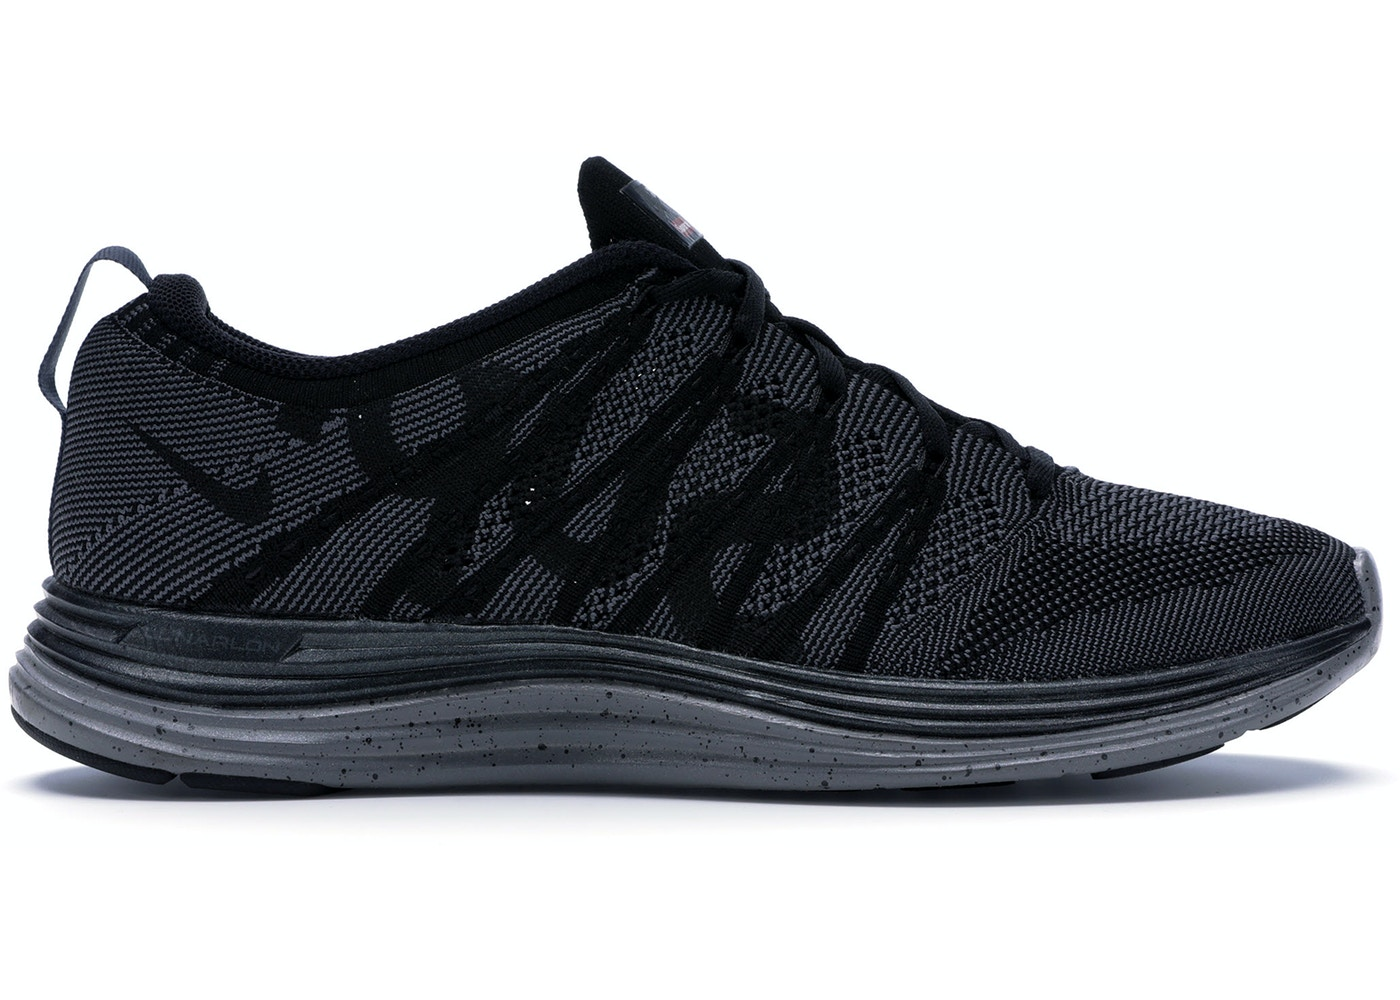 a few days away reasonably priced get new Nike Flyknit Lunar1+ Supreme Black